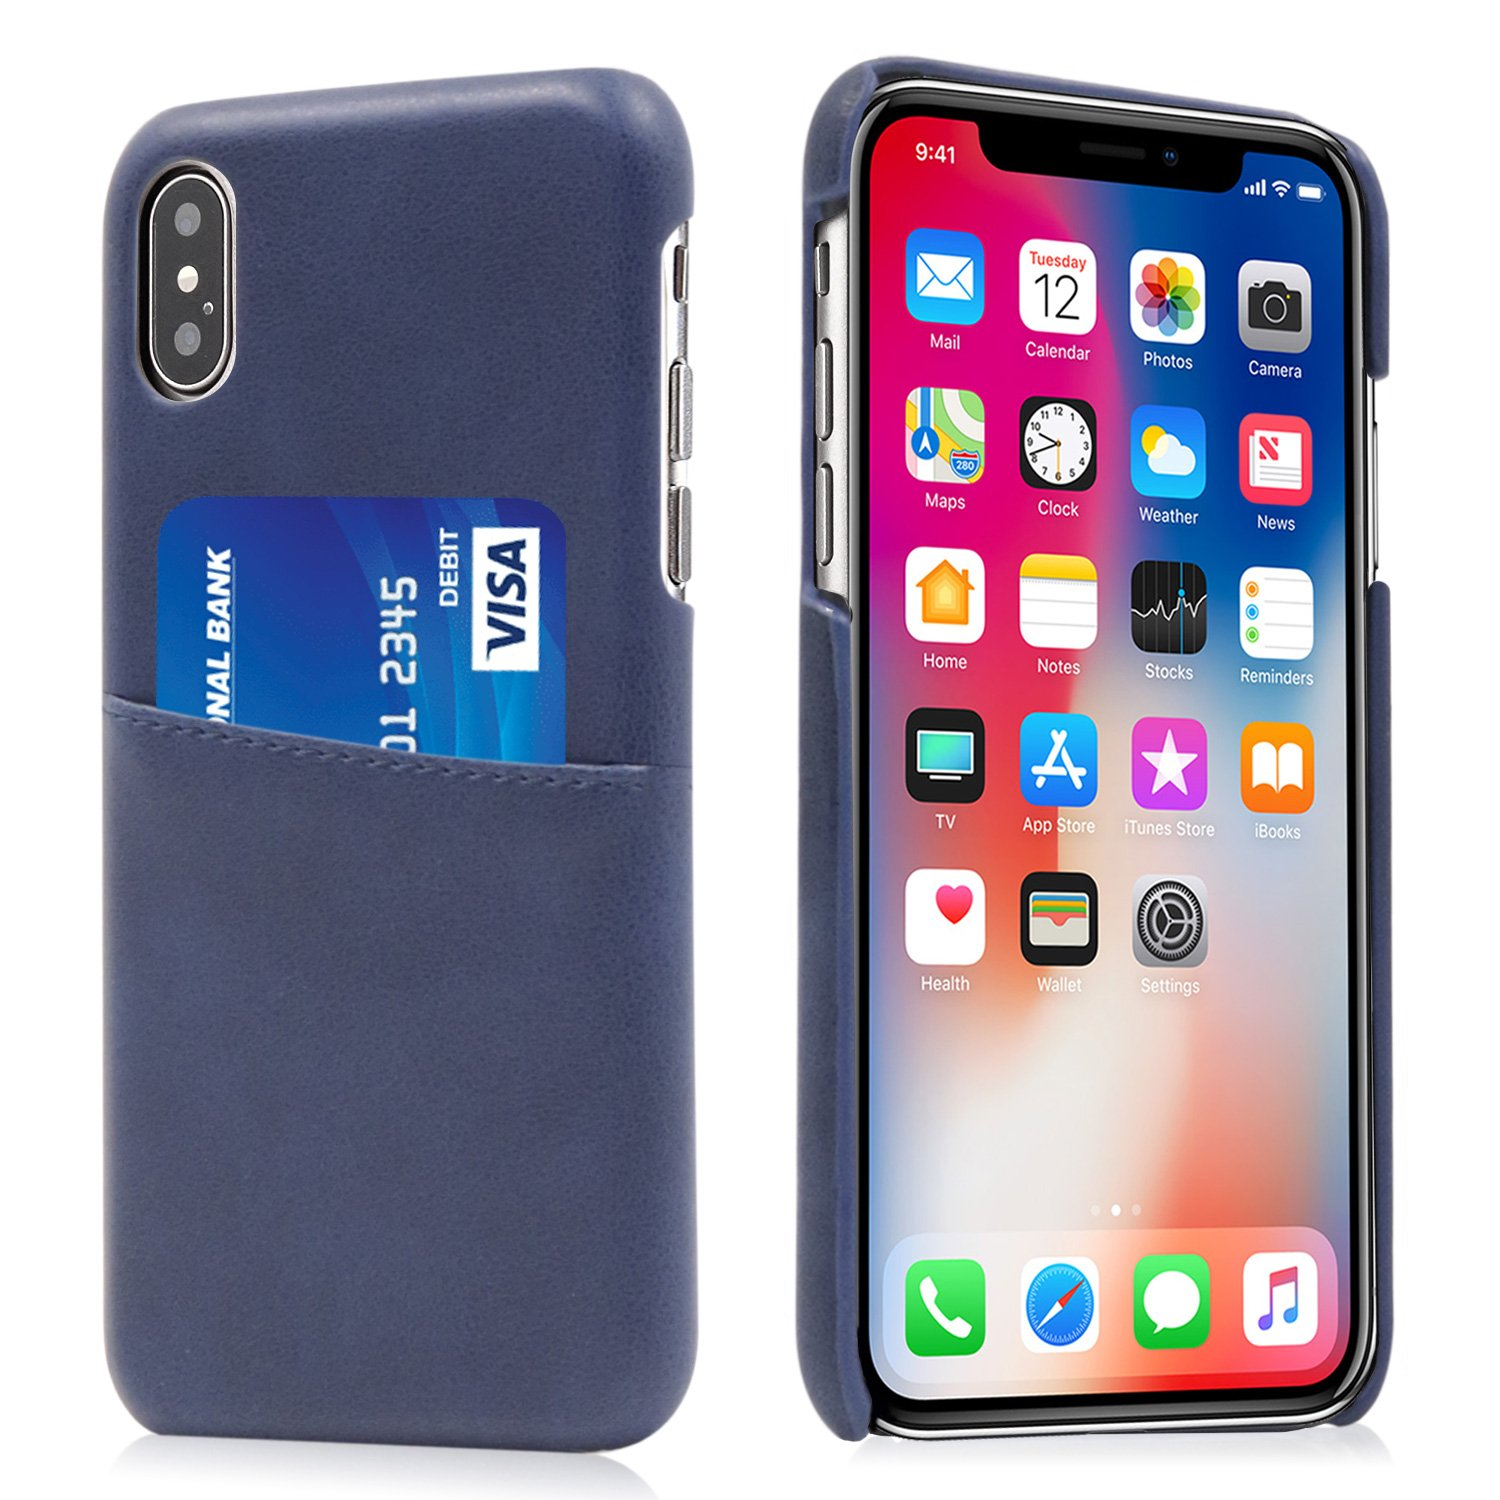 Buruis iPhone X Slim Card Case, Premium PU Leather Shockproof Wallet Case with Credit Card Slot Holder for Apple iPhone X (Blue)